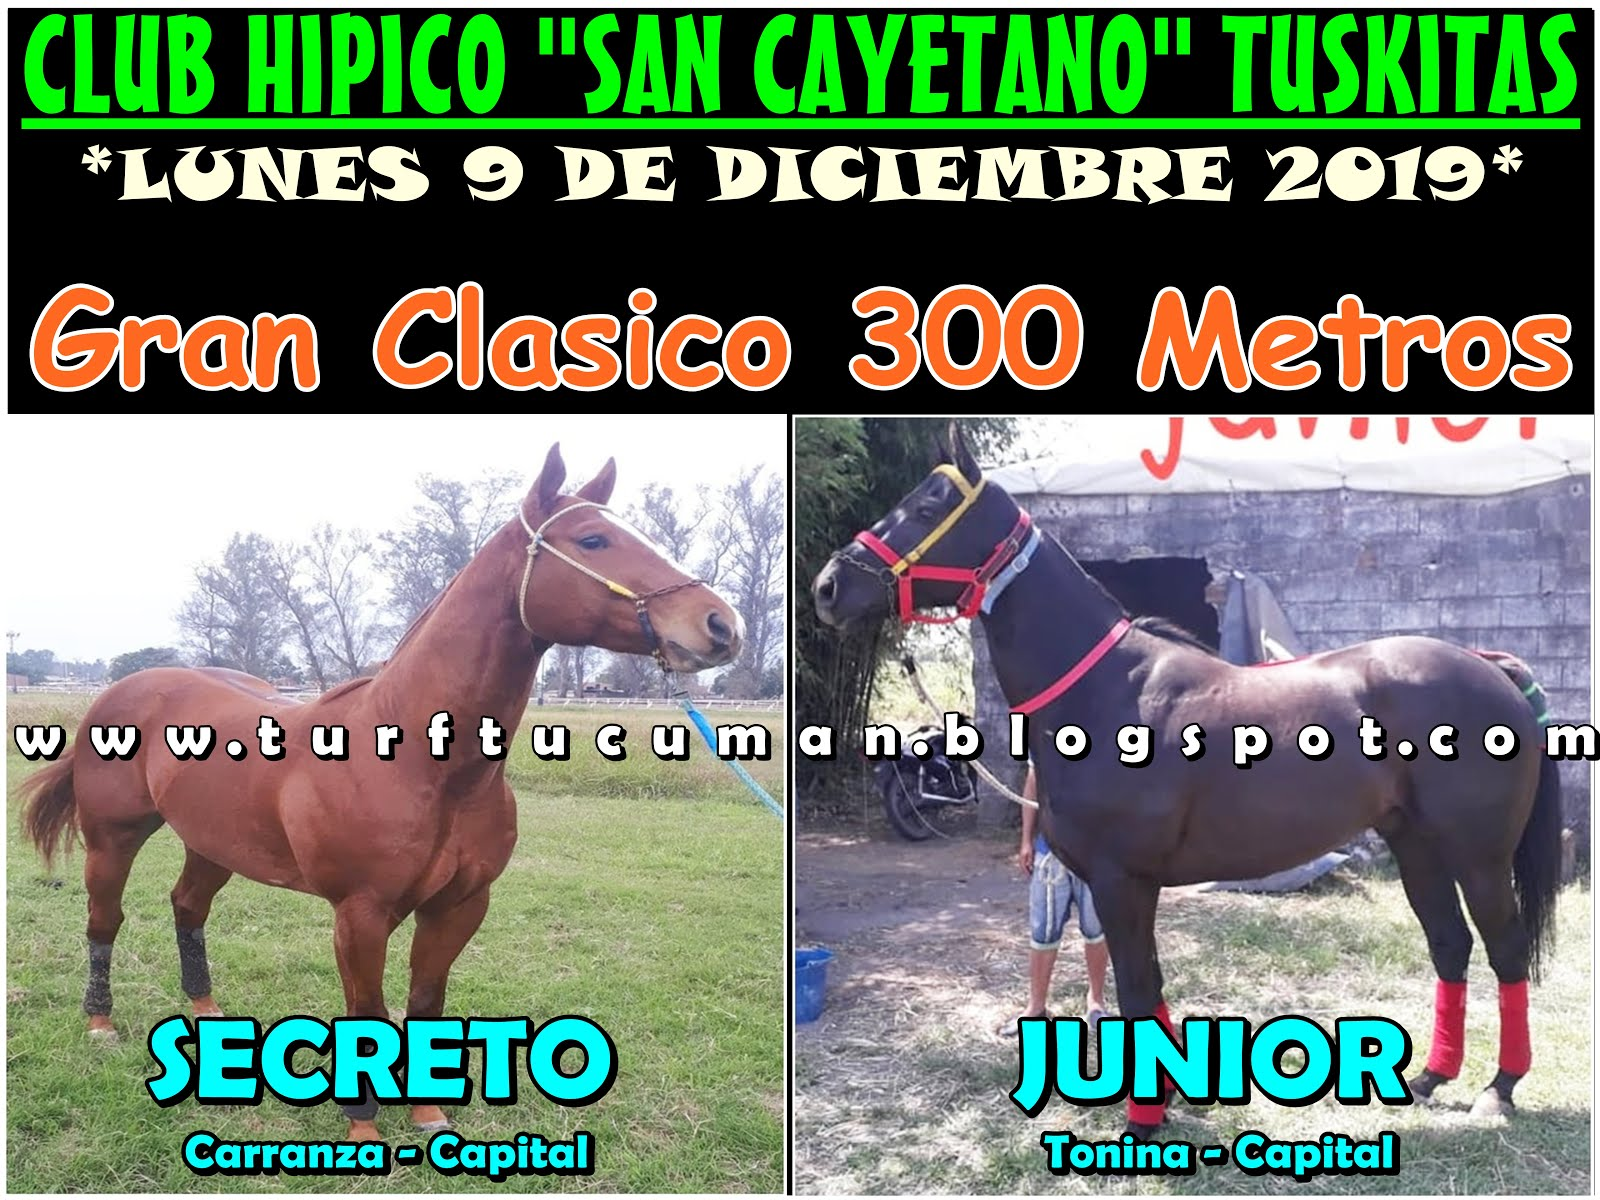 SECRETO VS JUNIOR